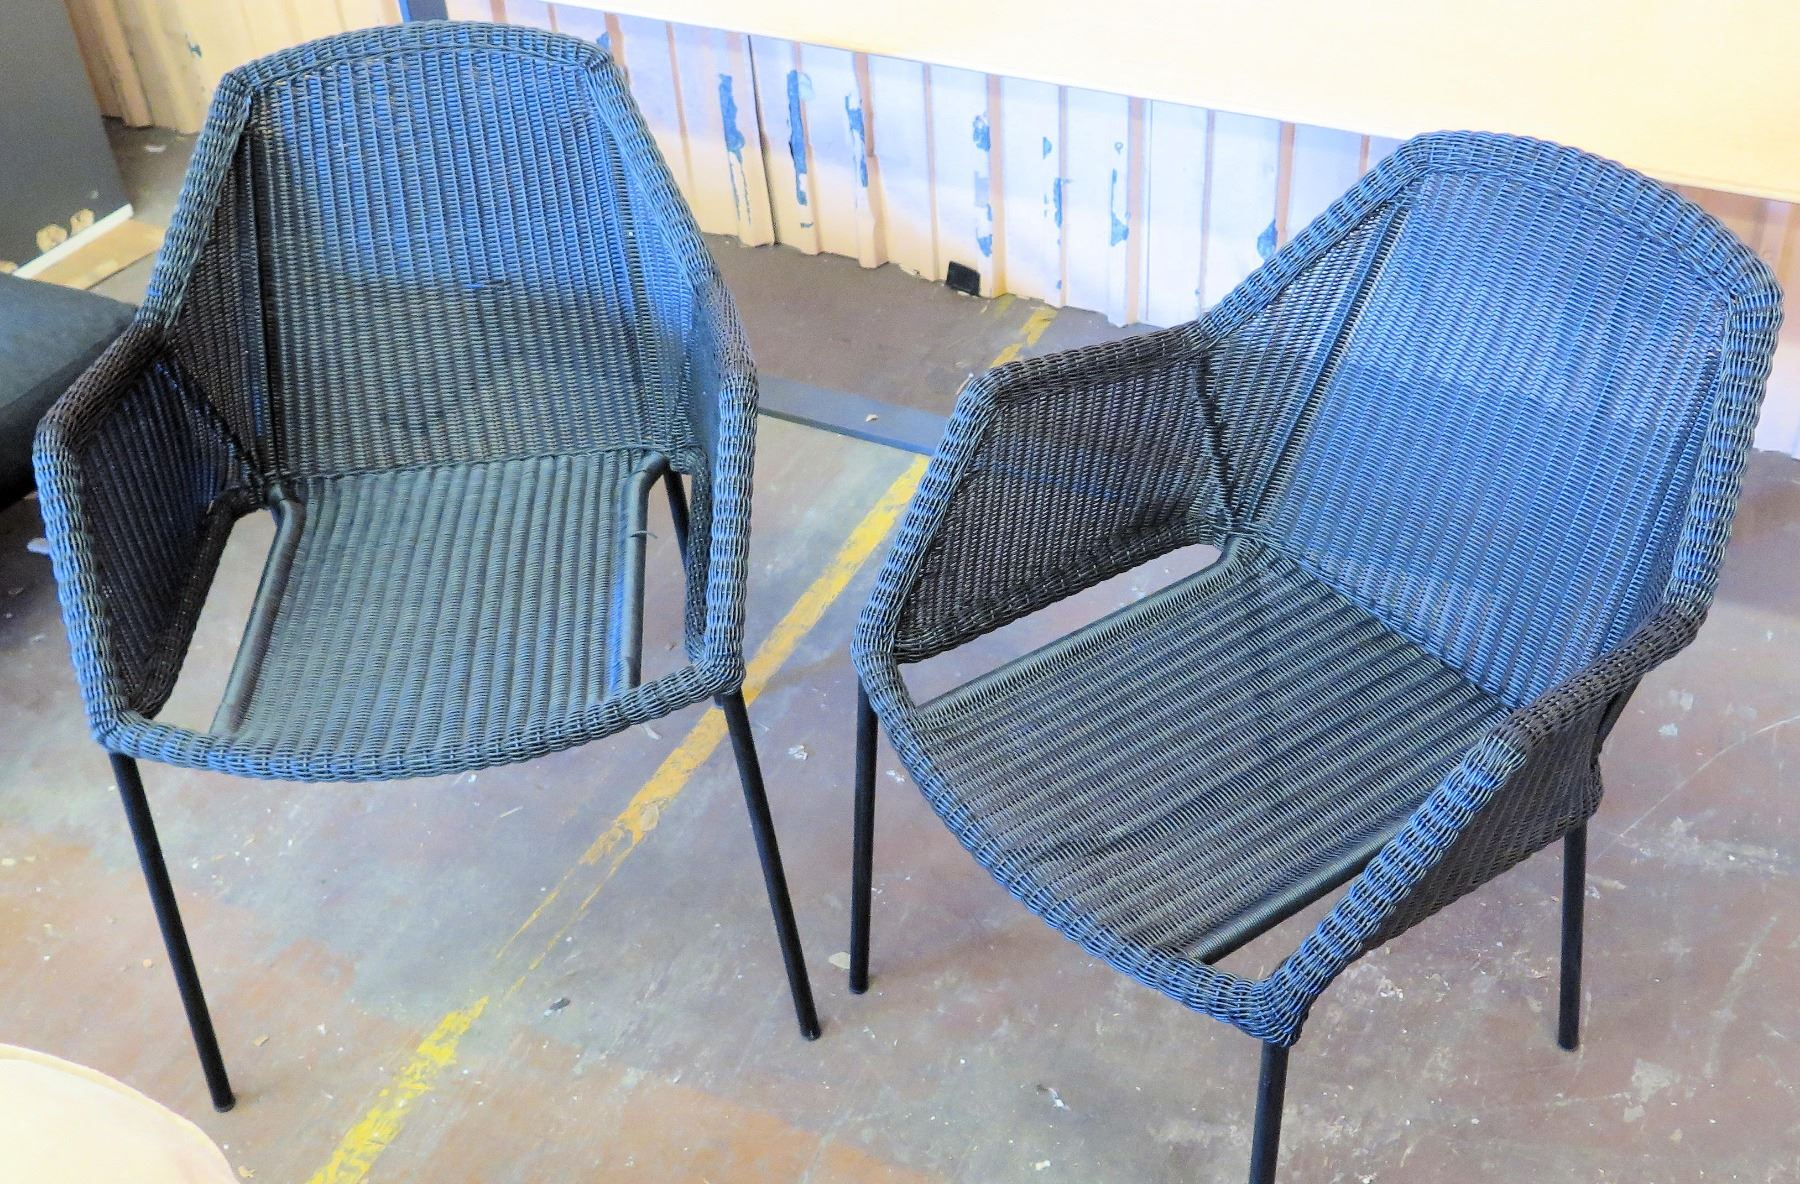 Phenomenal Qty 2 Cane Line Woven Outdoor Patio Chairs 24W Arm To Arm Ibusinesslaw Wood Chair Design Ideas Ibusinesslaworg